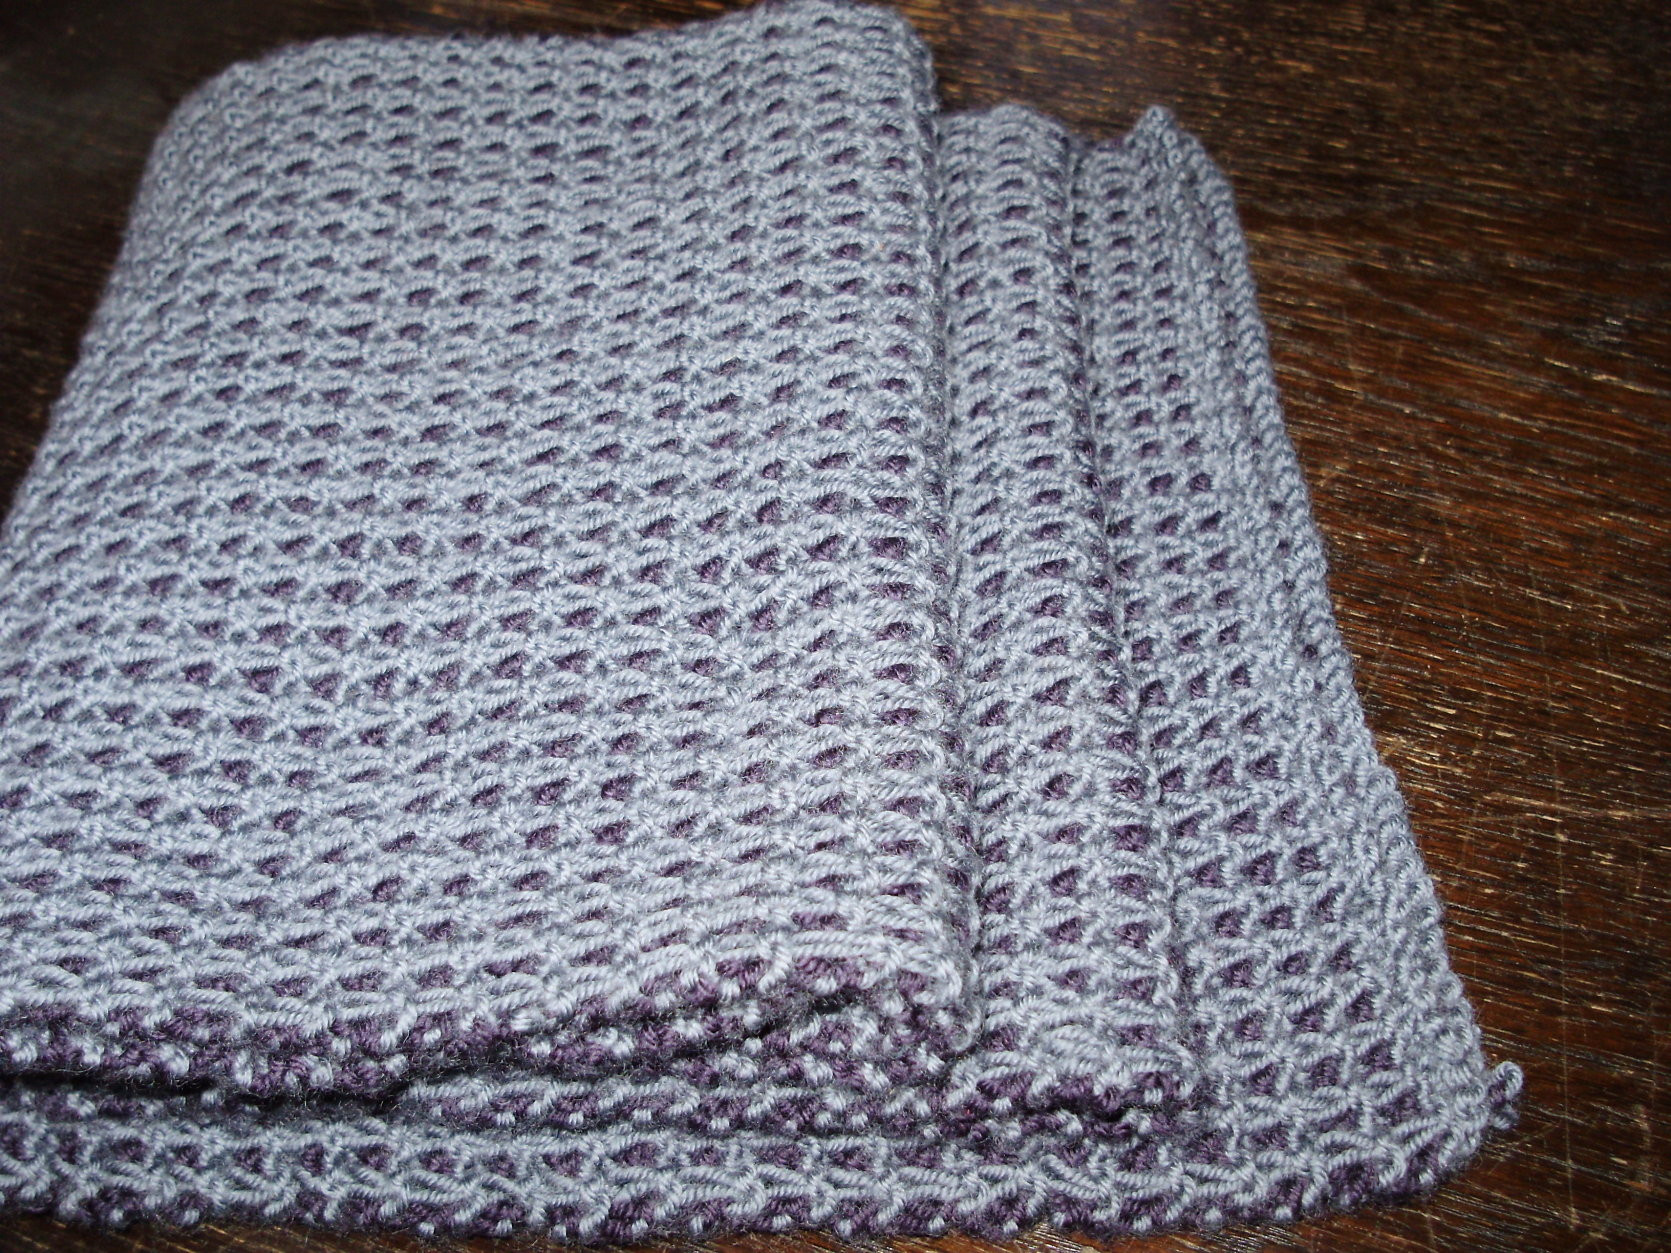 Best Of Knitting Stitches for Scarves Slip Knit Of Incredible 44 Ideas Slip Knit